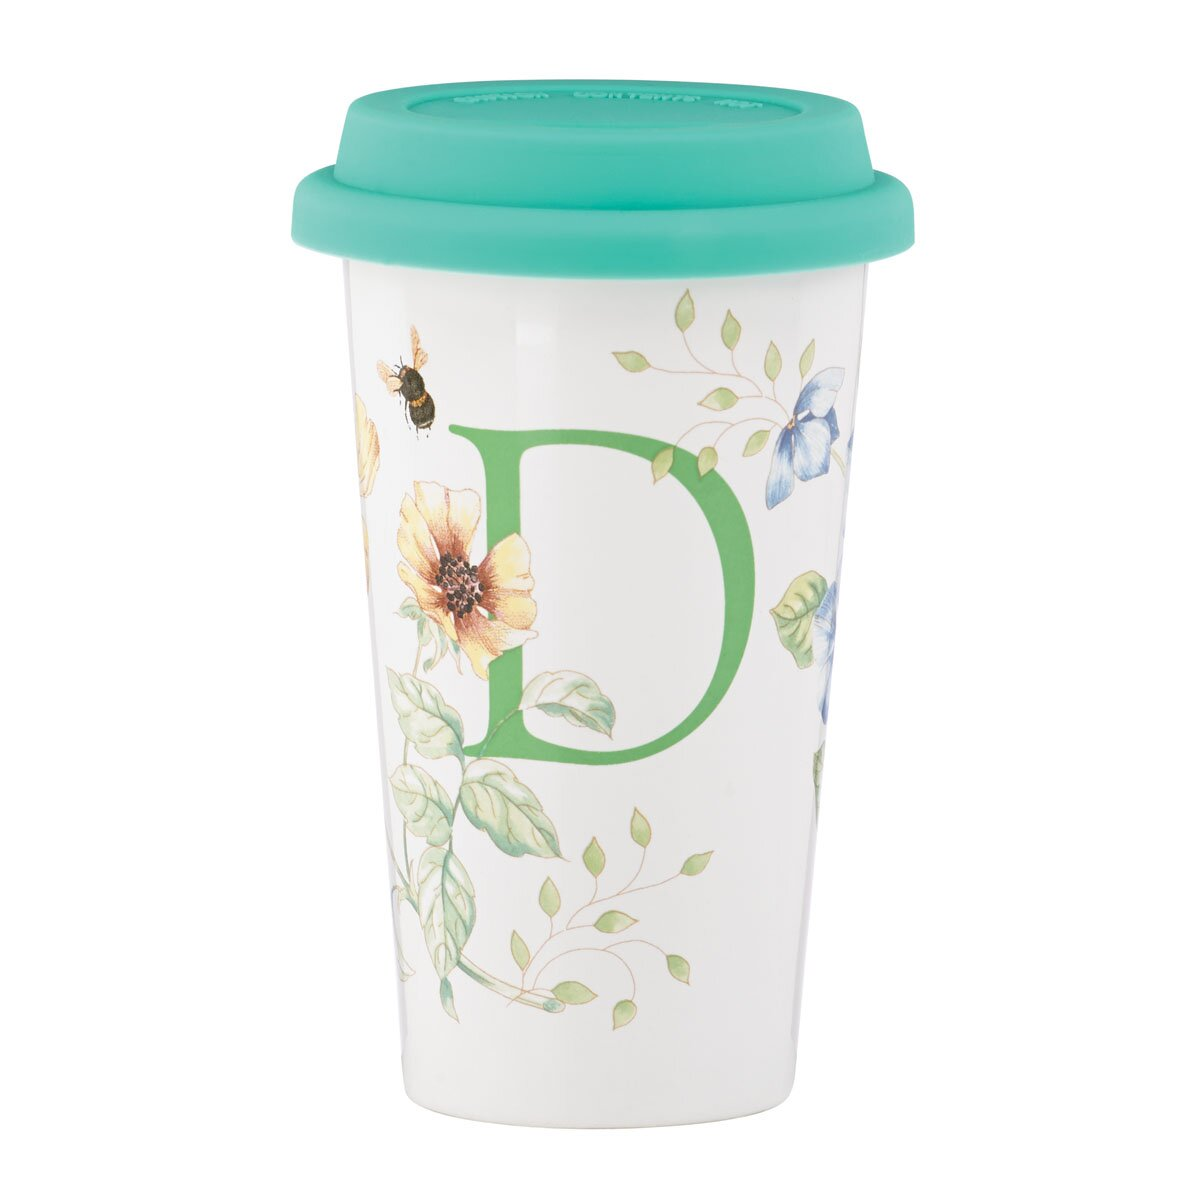 Lenox Butterfly Meadow A Thermal Travel Mug Reviews Wayfair